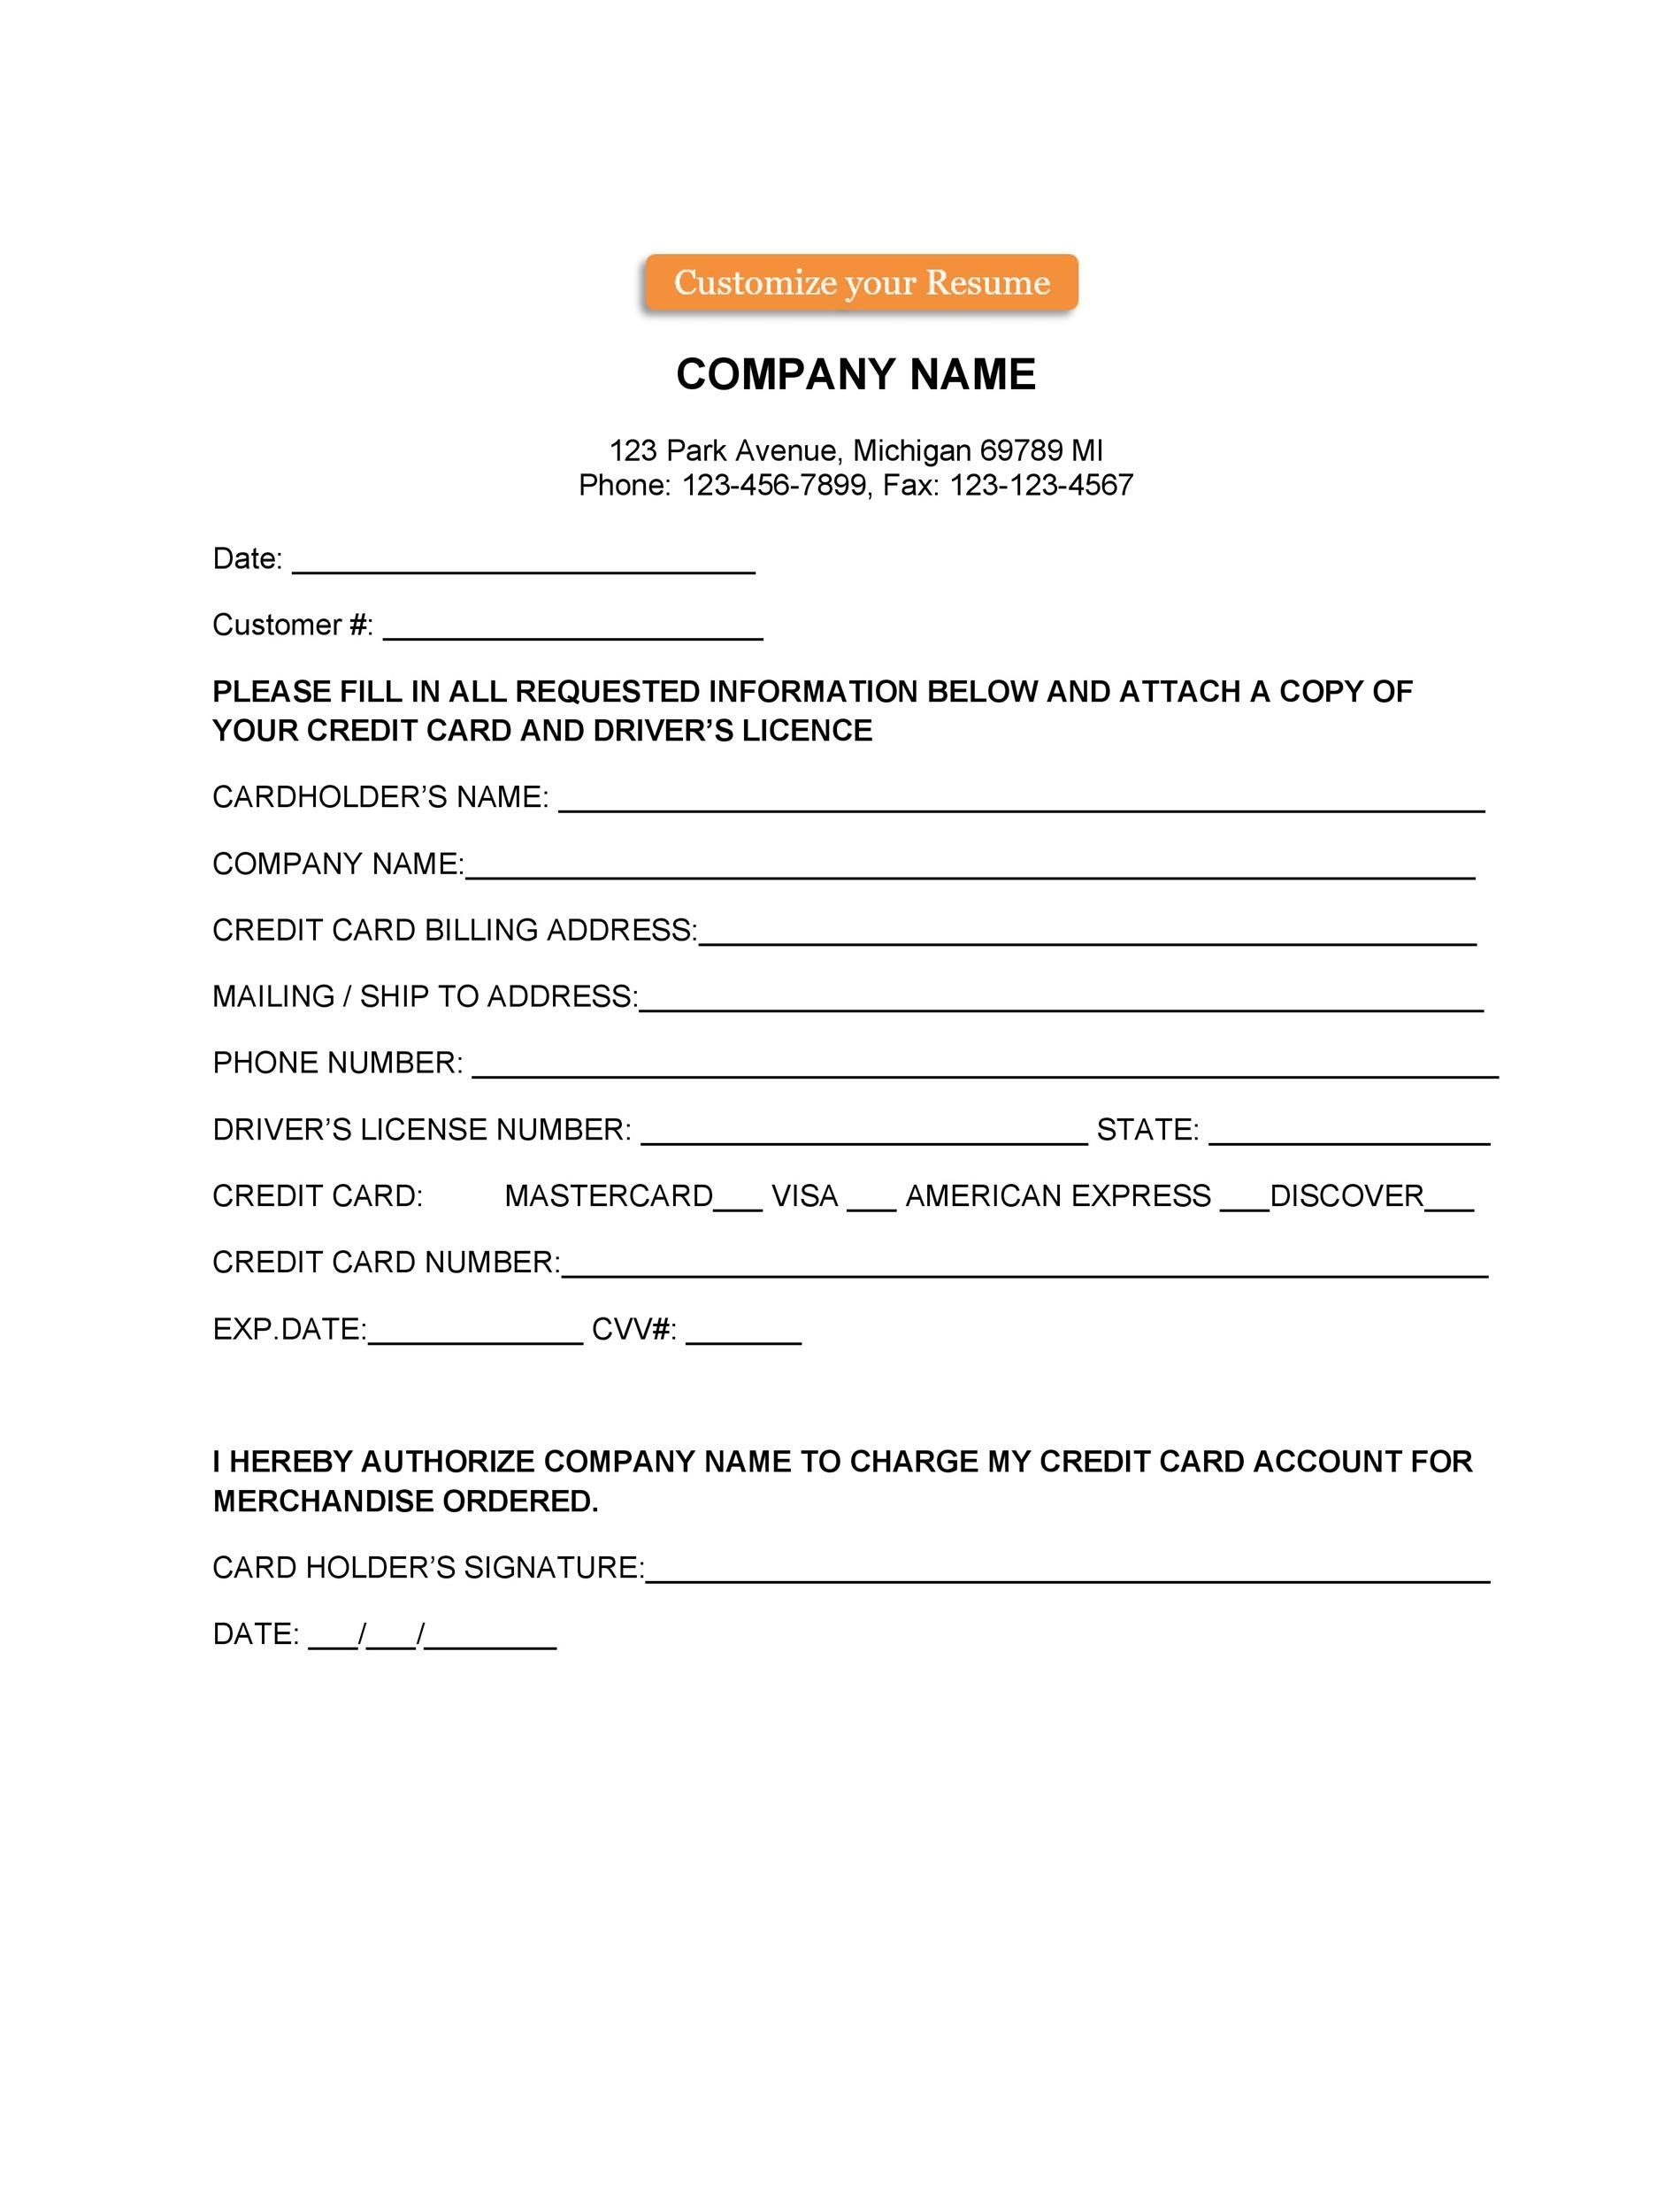 Free credit card authorization form template 06